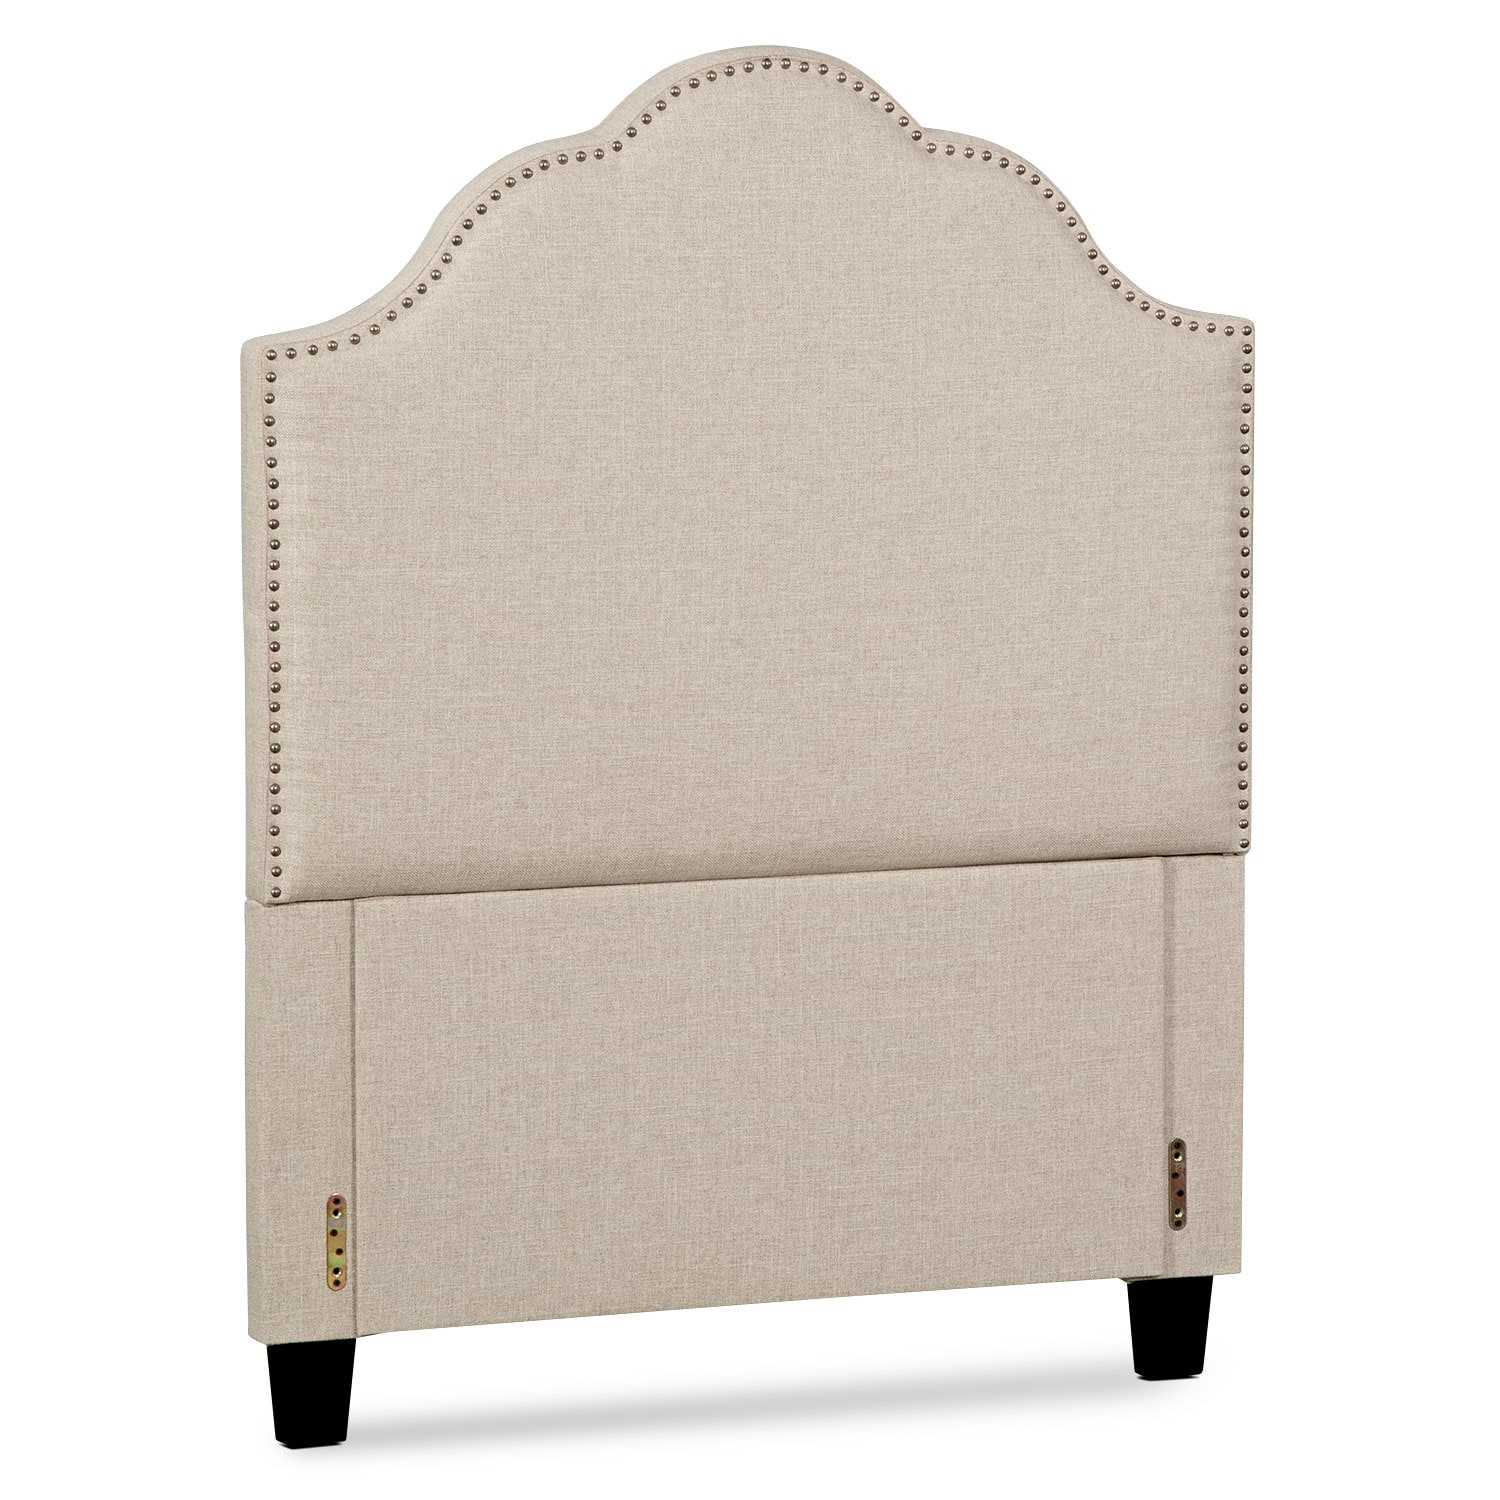 Maya Twin Upholstered Headboard - Beige